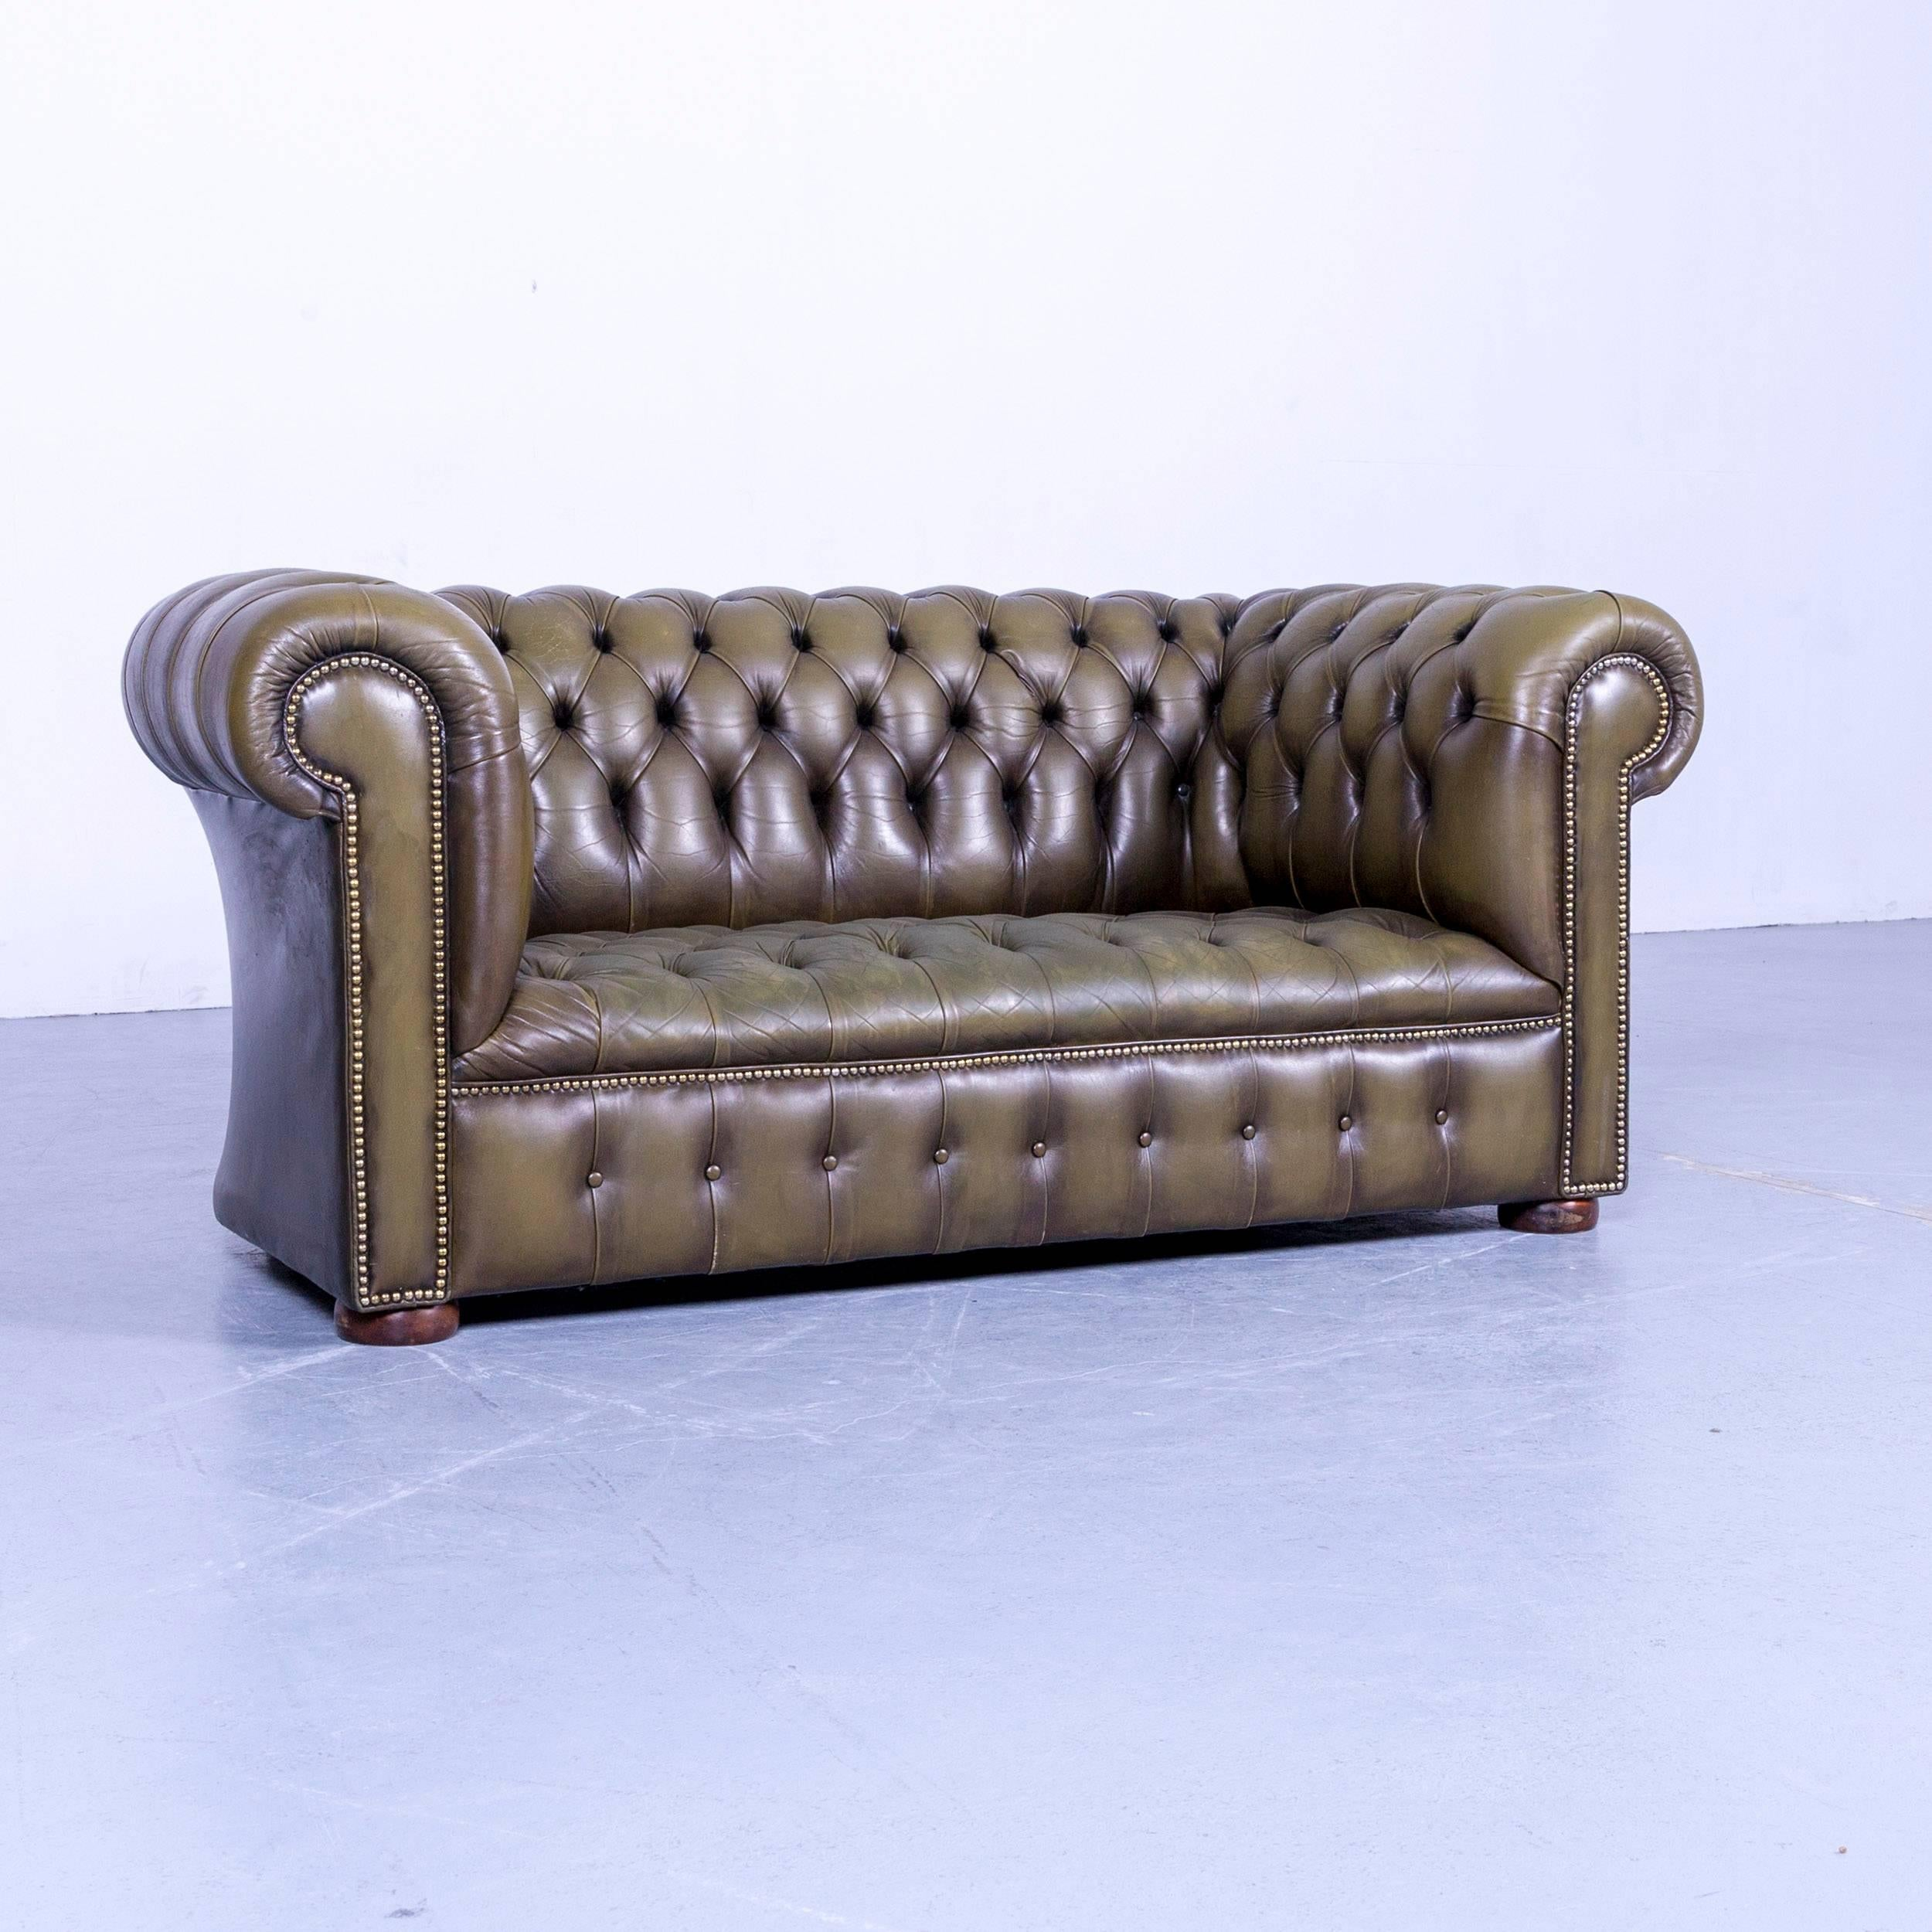 An Chesterfield Leather Sofa Olive Green Couch Vintage Two Seat.